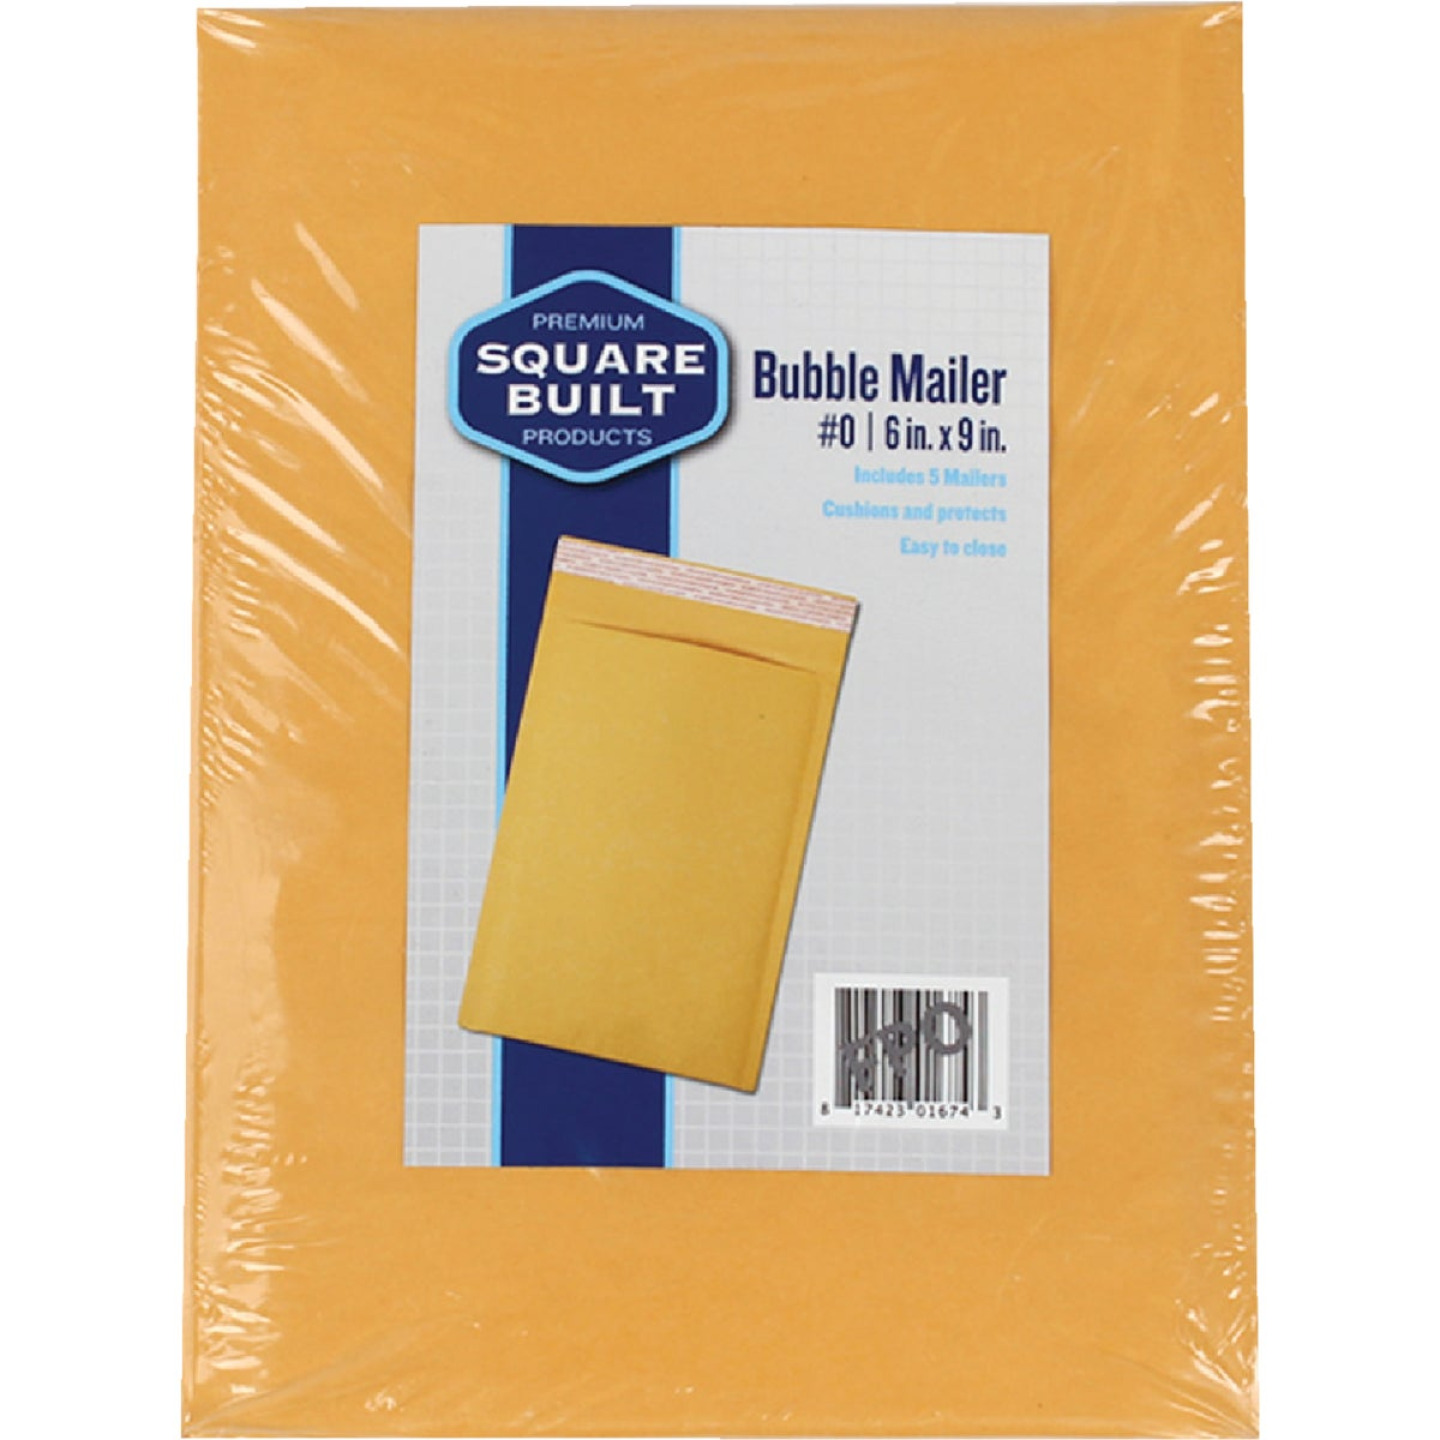 Square Built 6 In. x 9 In. #0 Bubble Mailer (5-Pack) Image 1